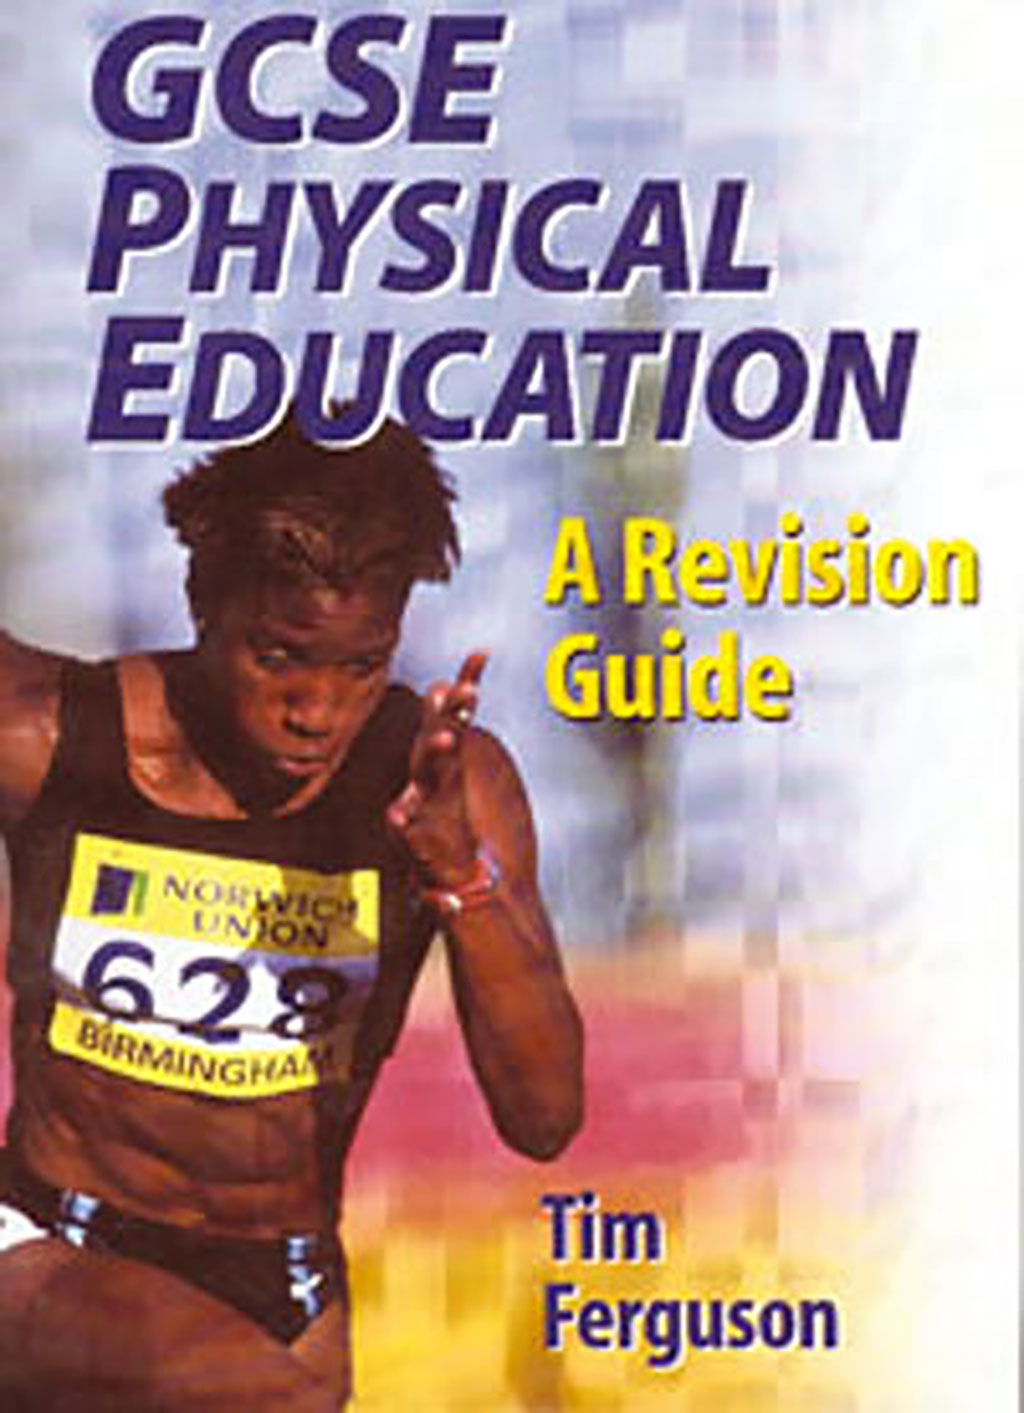 GCSE PHYSICAL EDUCATION: A REVISION GUIDE BOOK